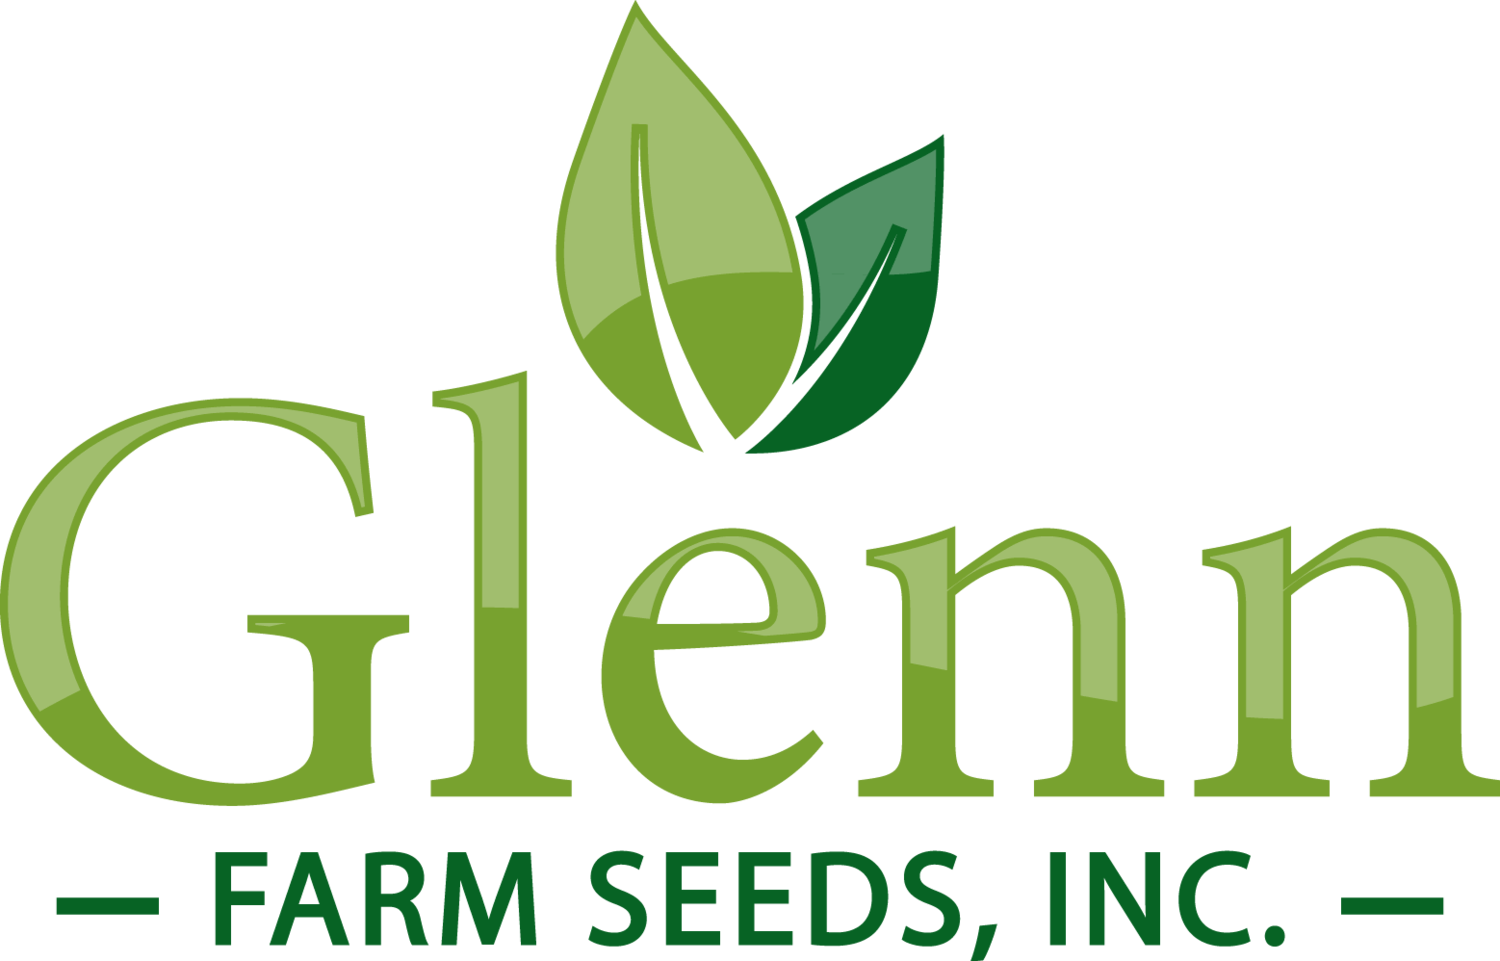 Glenn Farm Seeds